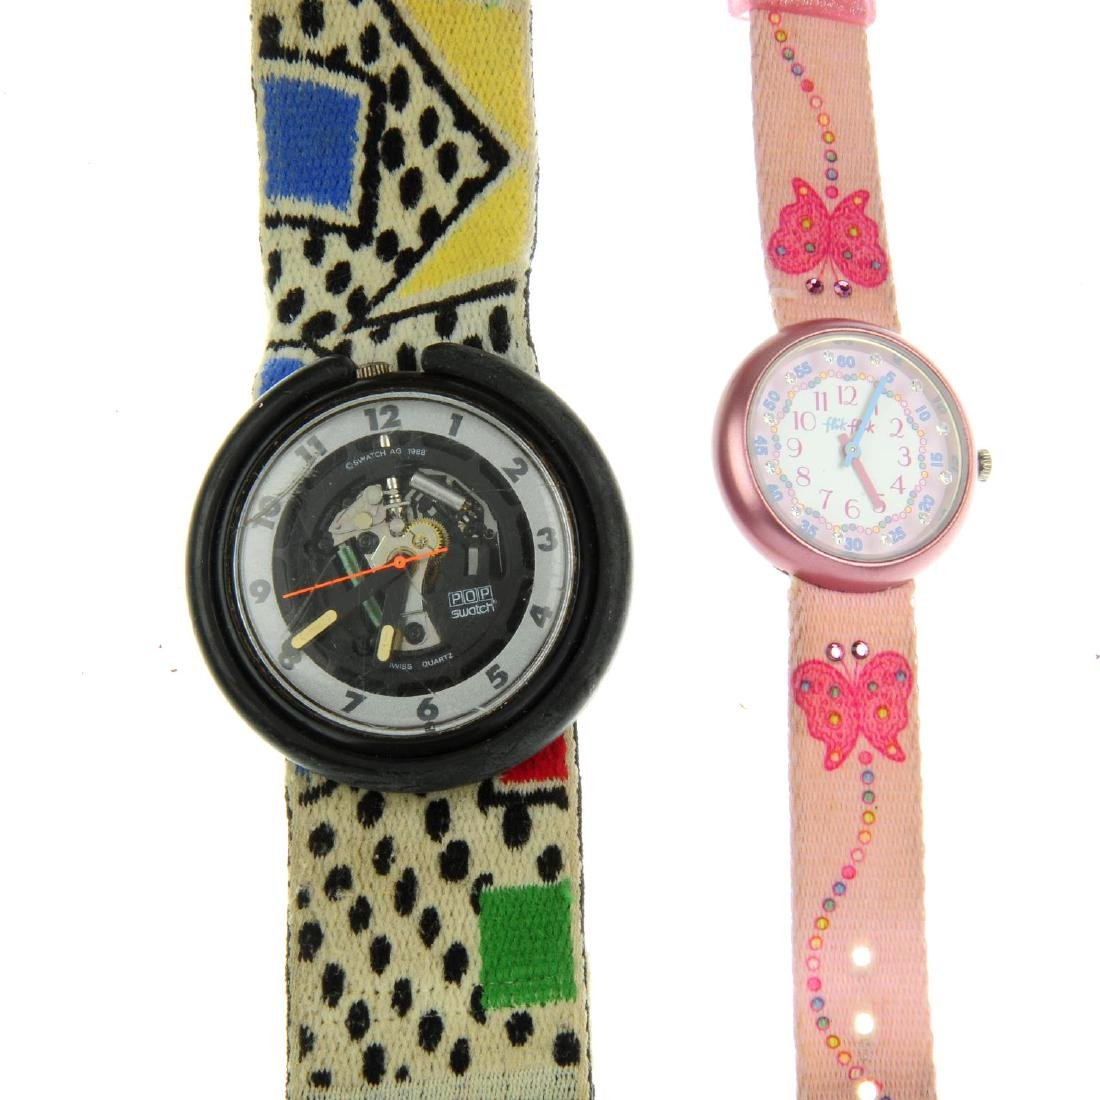 A bag of assorted Swatch and Flick Flack watches. All